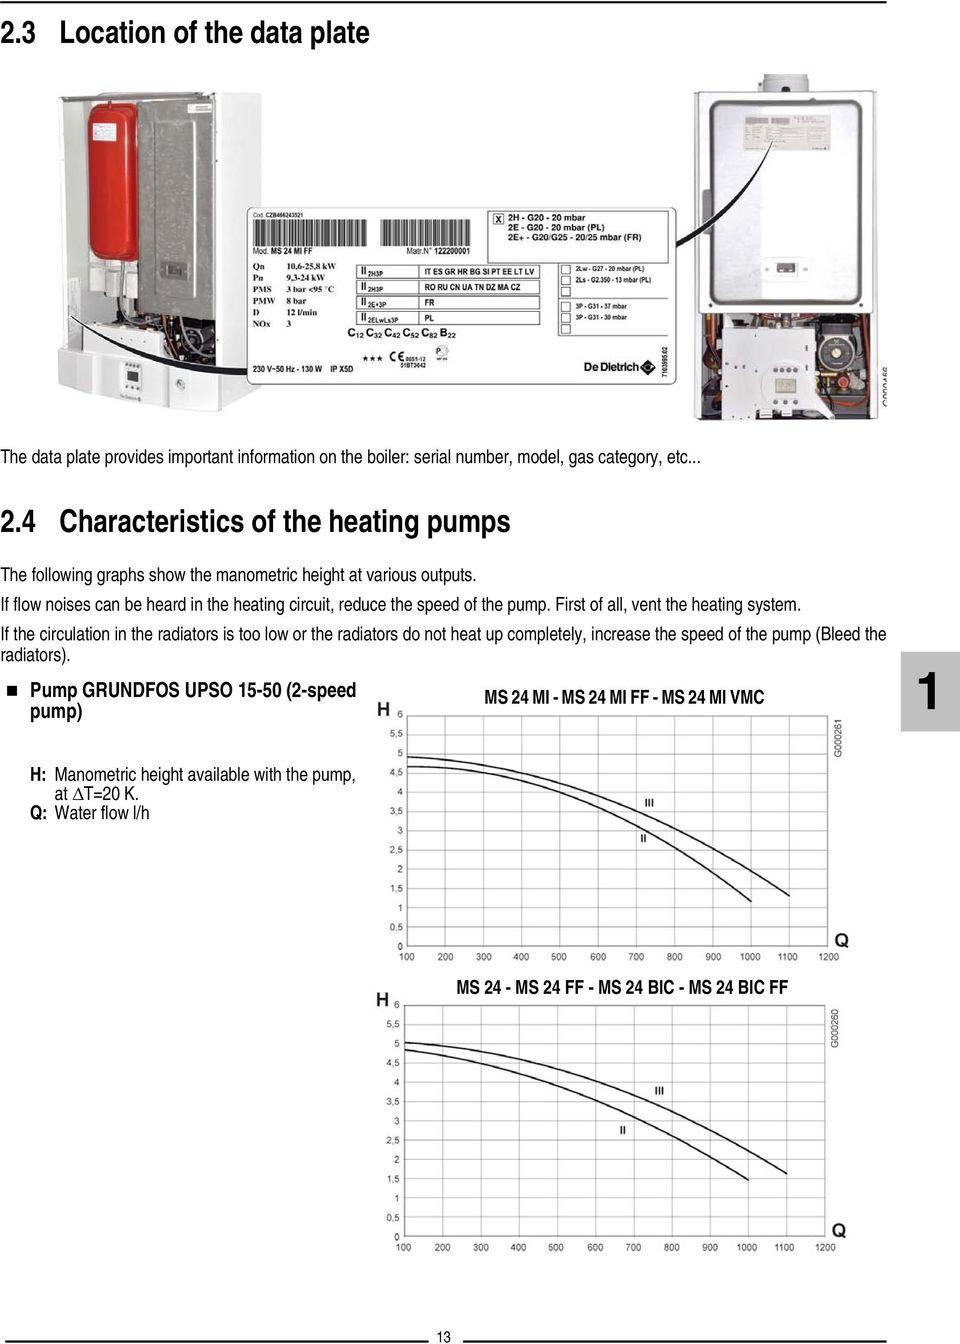 Circulating pumps for heating systems: technical characteristics, operating principle, instruction, feedback